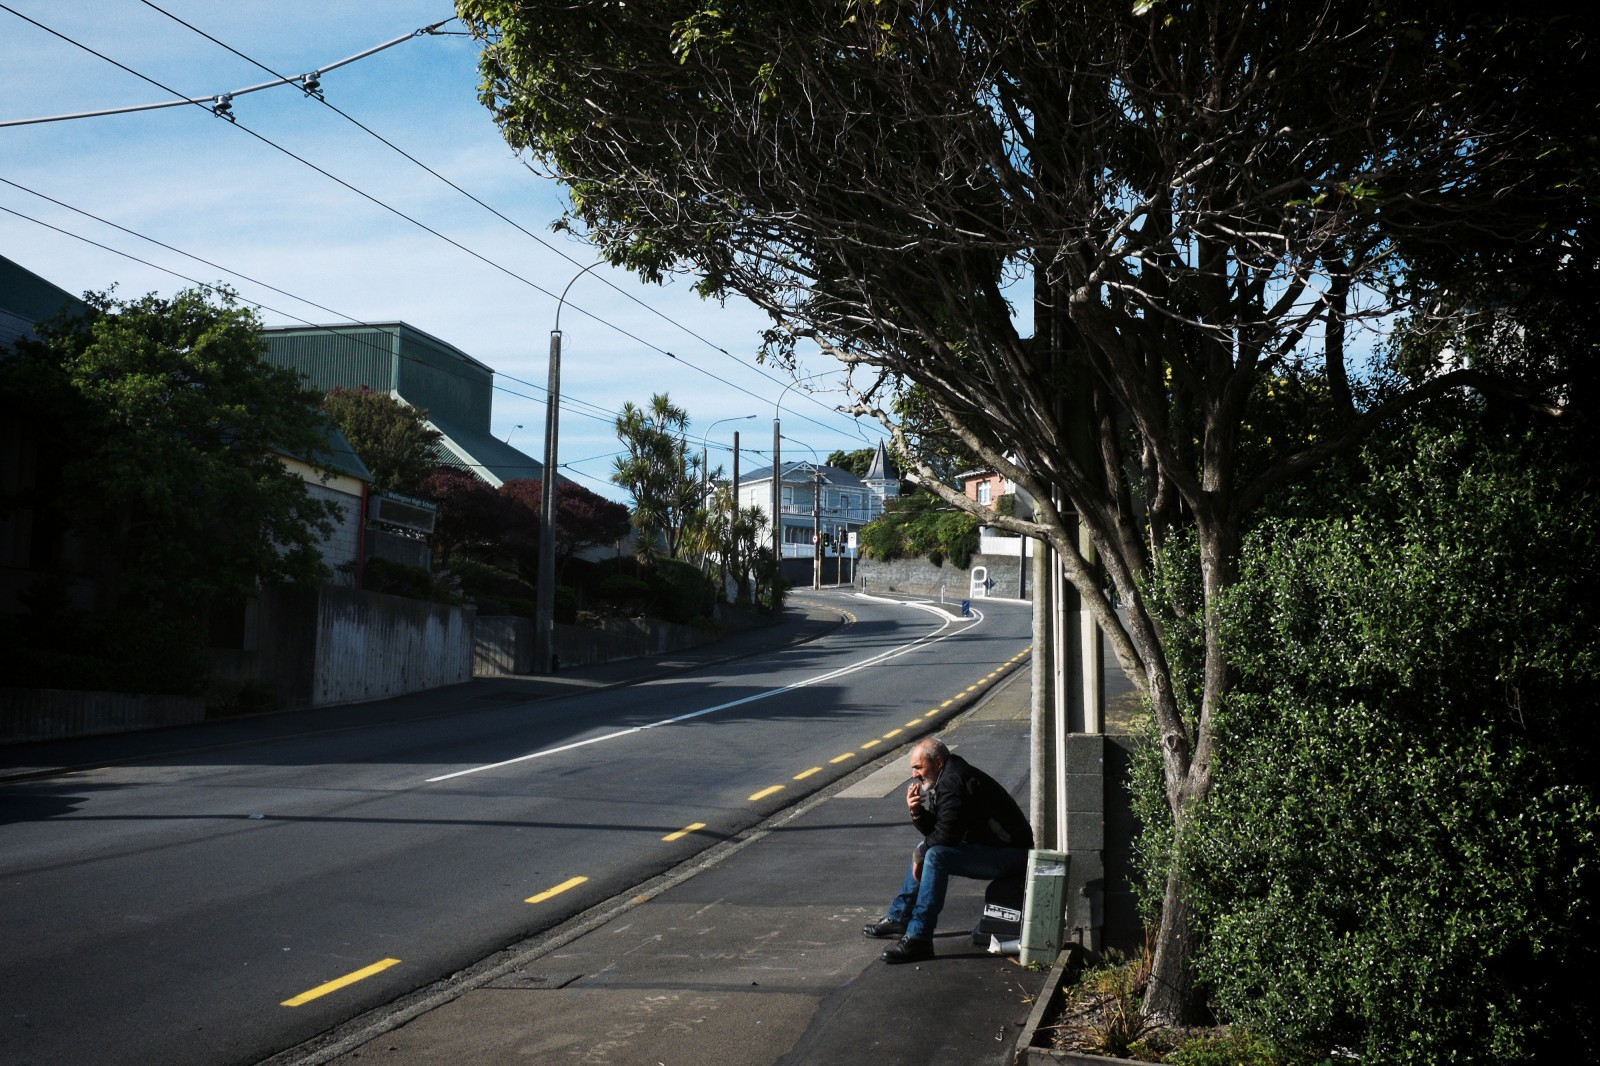 'Ari', a man who has experienced homelessness for over a decade, sits on a bench outside the Wellington night shelter on upper Taranaki Street. The night shelter provides beds for 45 men, many of whom, like 'Ari', are cycling through different types of sub-standard housing. Wellington Council has recently provided funding for a social worker to help guests engage with health and other services, but the shelter lacks the funding to assist everyone who comes through its doors.